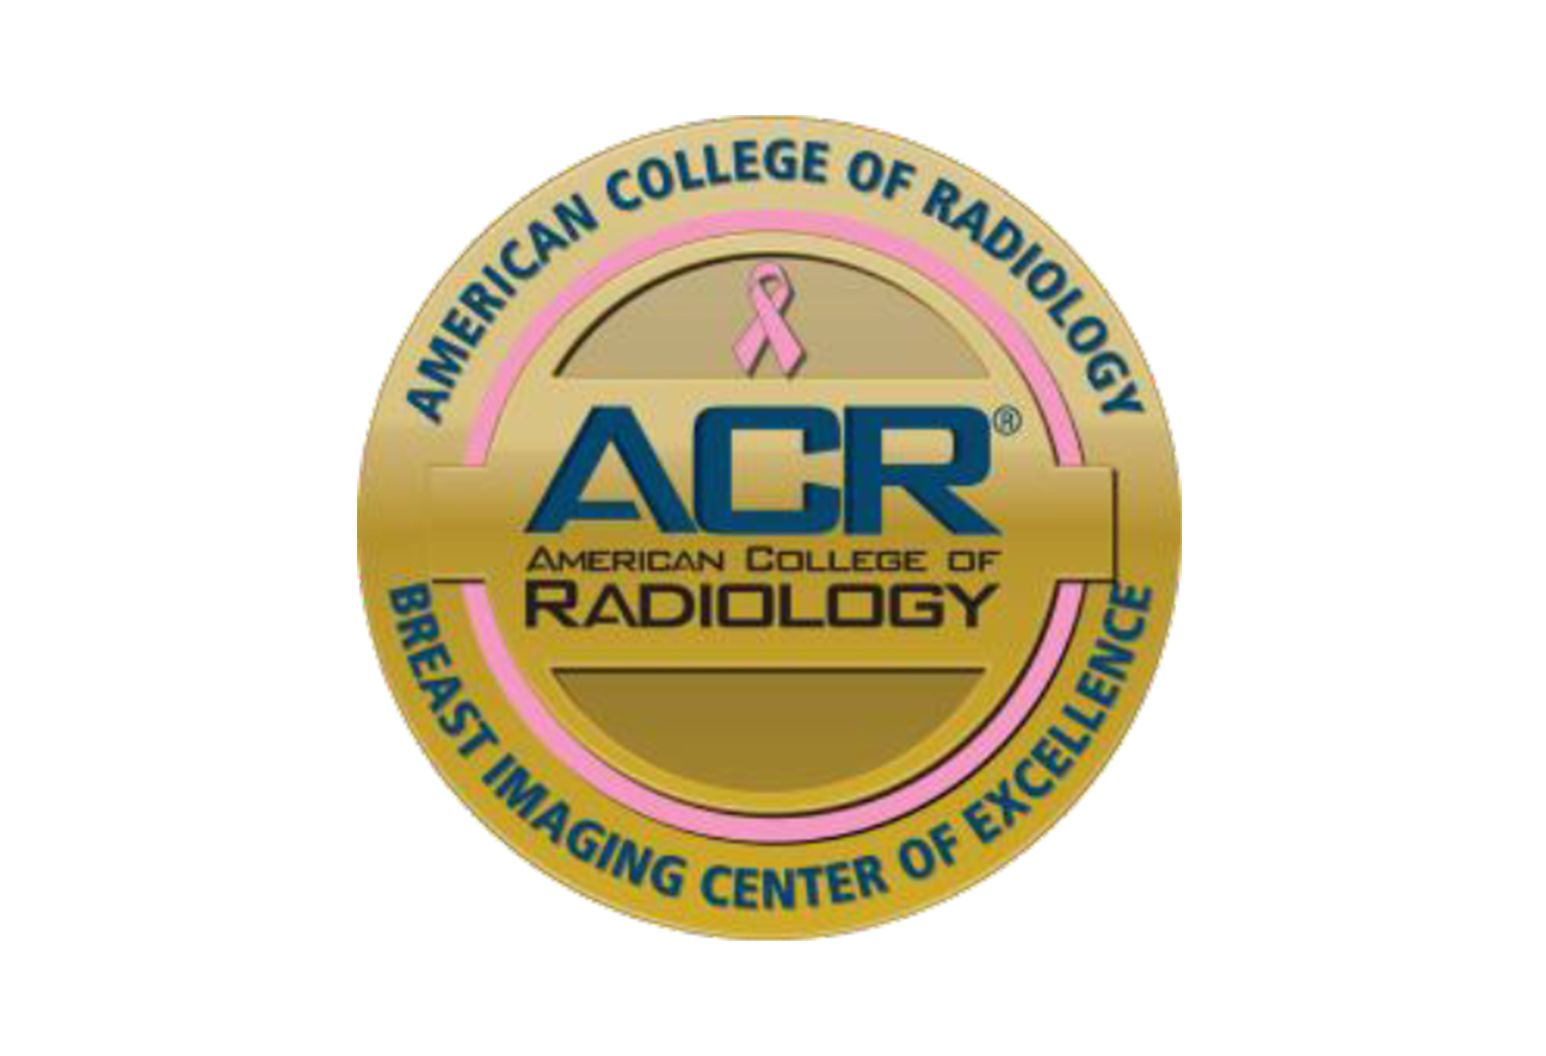 Badge for the American College of Radiology Breast Imaging Centers of Excellence